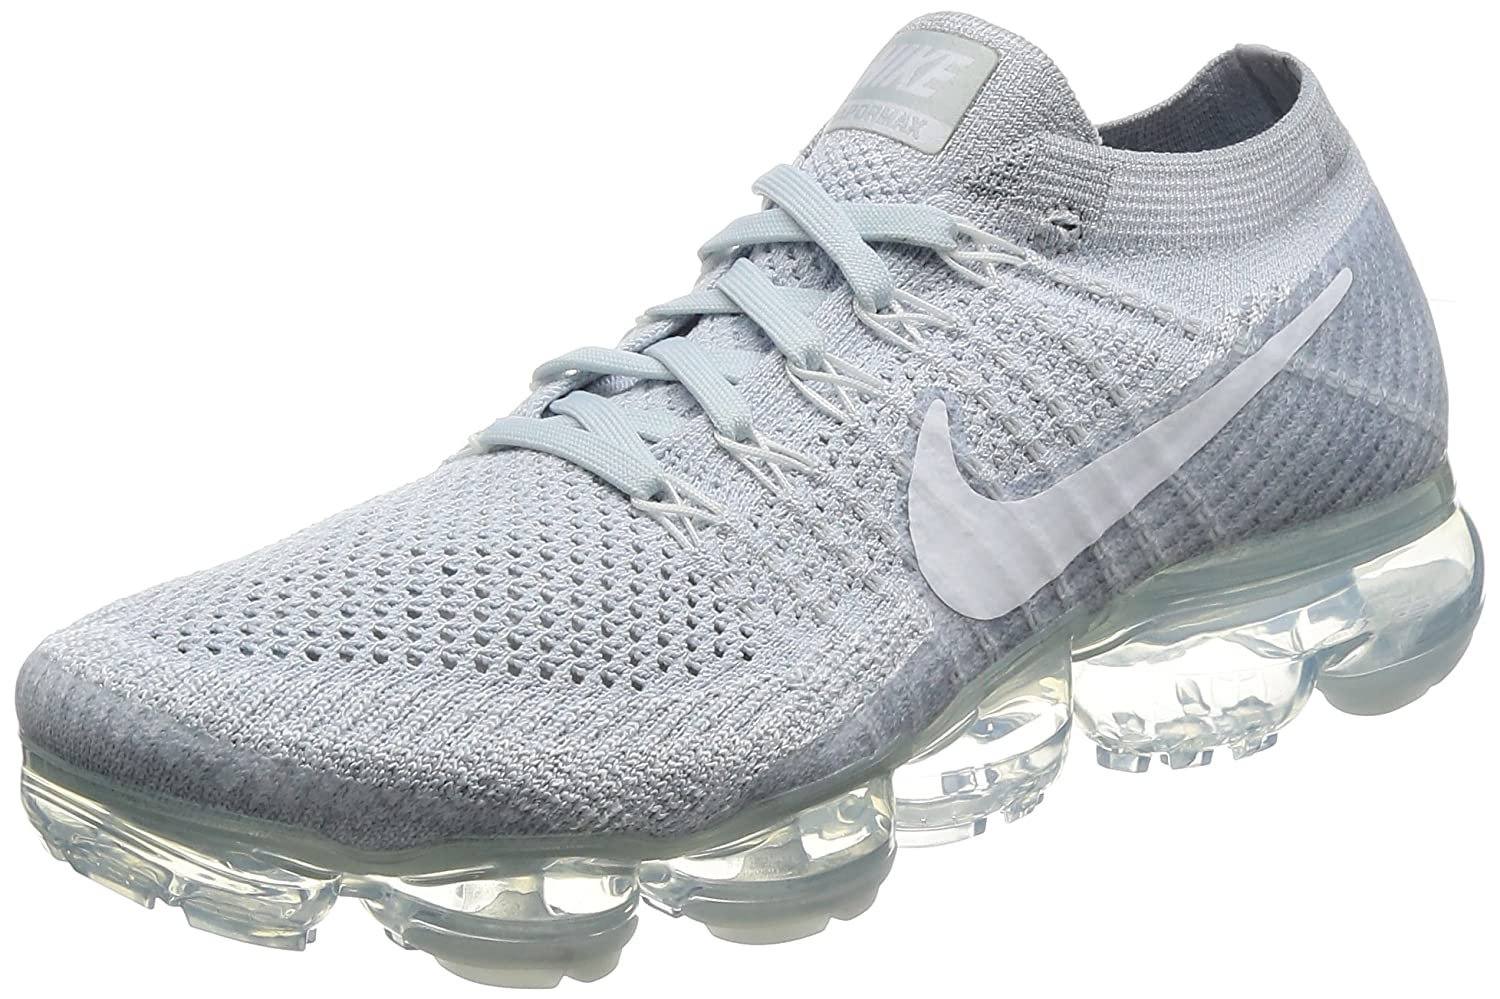 best cheap b6159 593fc Amazon.com   Men s Nike Air Vapormax Flyknit Running Shoe   Fashion Sneakers